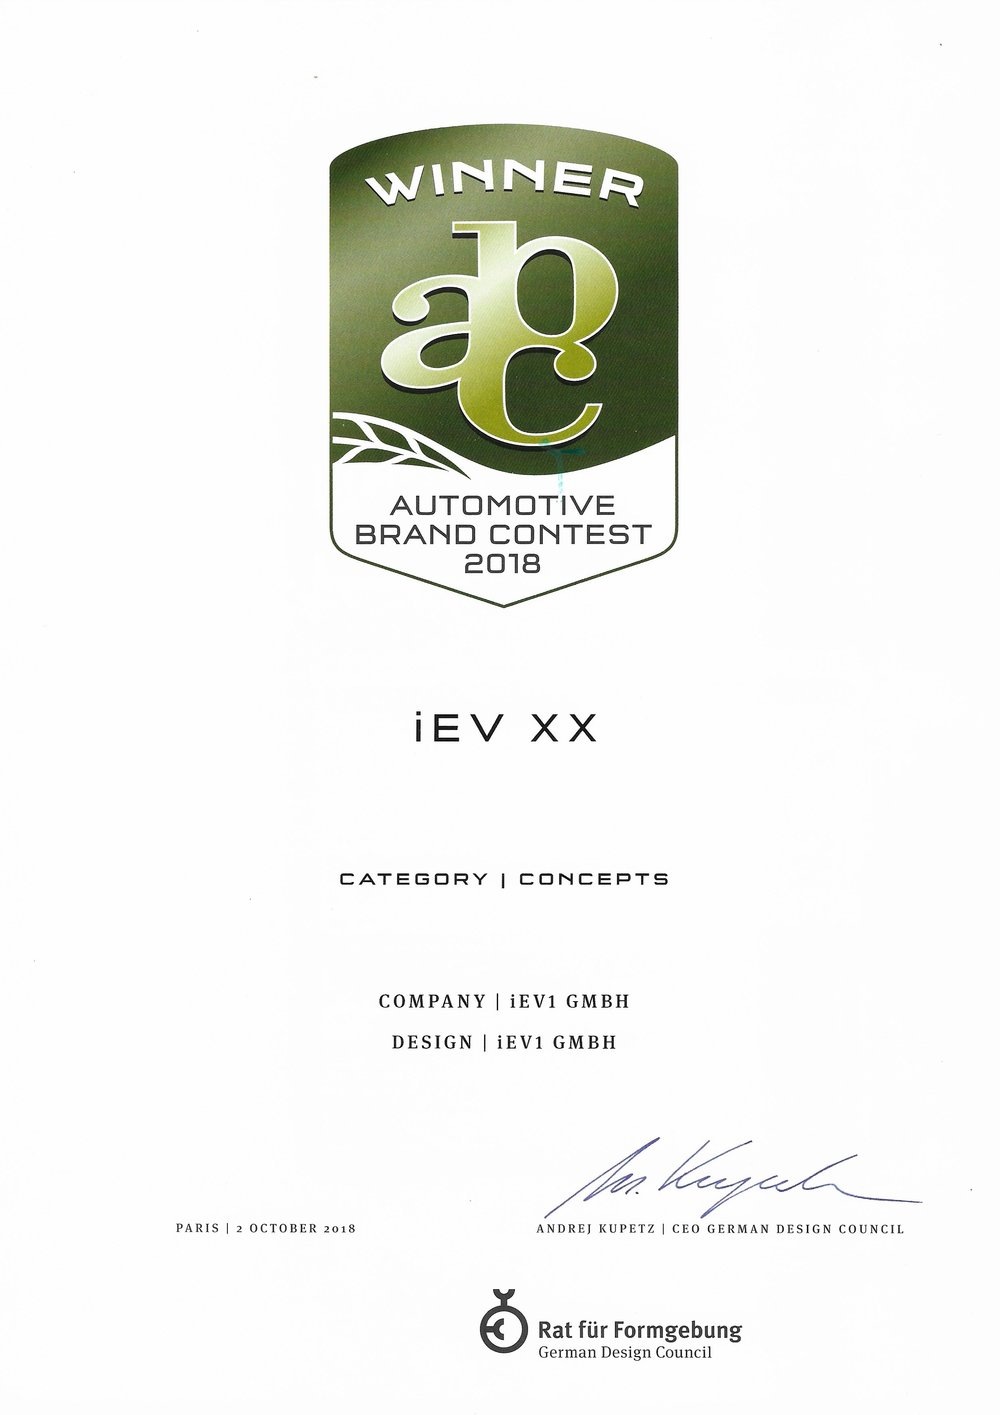 iEV XX WinnerAutomotive Brand Contest - iEV XX CATEGORY Concept winner Automotive brand contest 2018